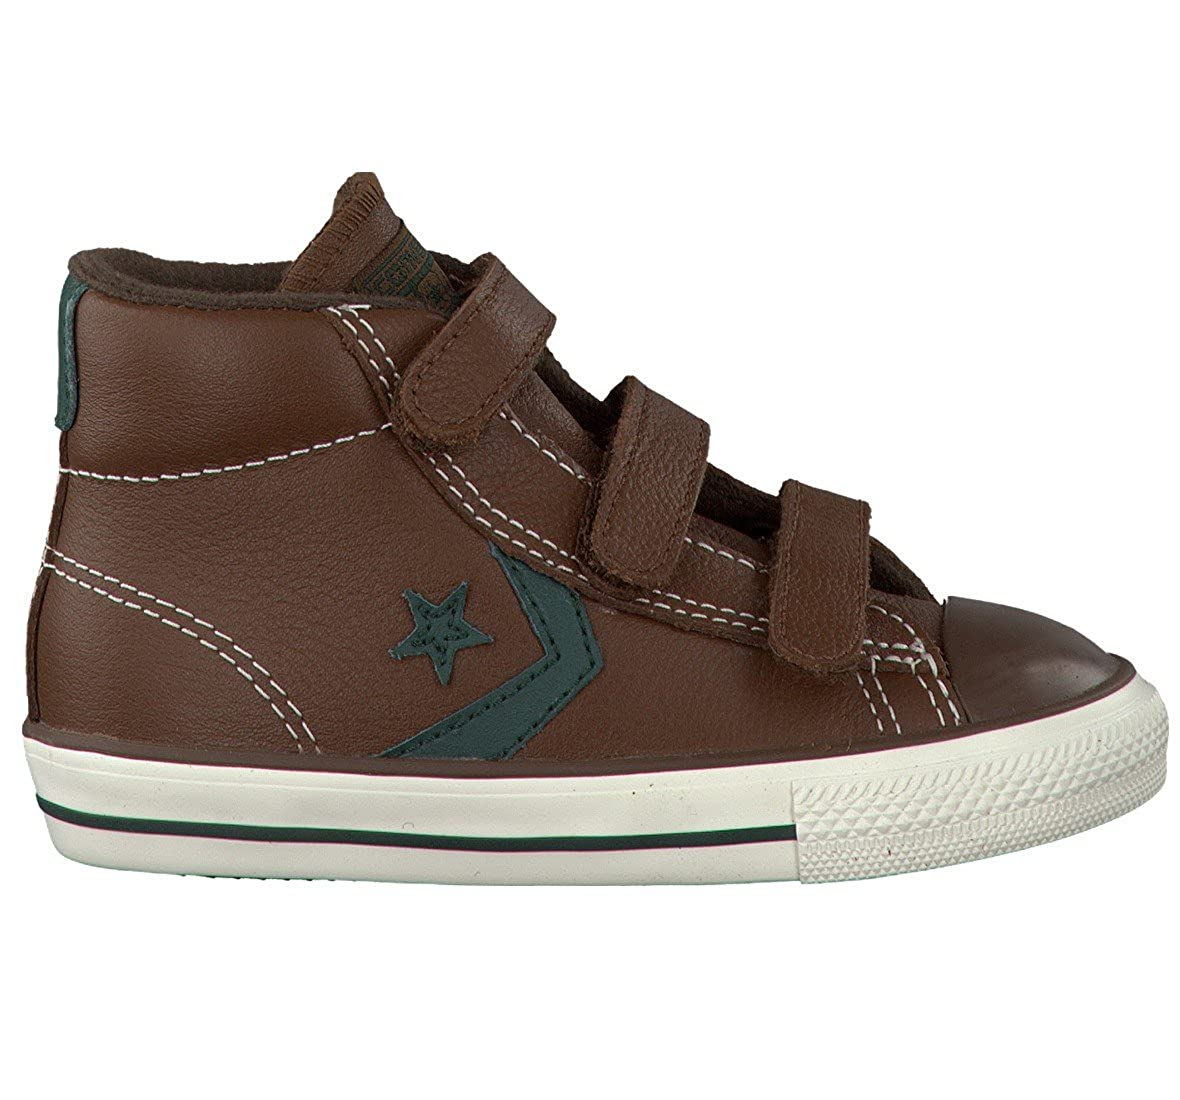 ec0591a22a36 Converse Star Player 3 V Leather Mid Unisex Children s Sneaker   Amazon.co.uk  Shoes   Bags